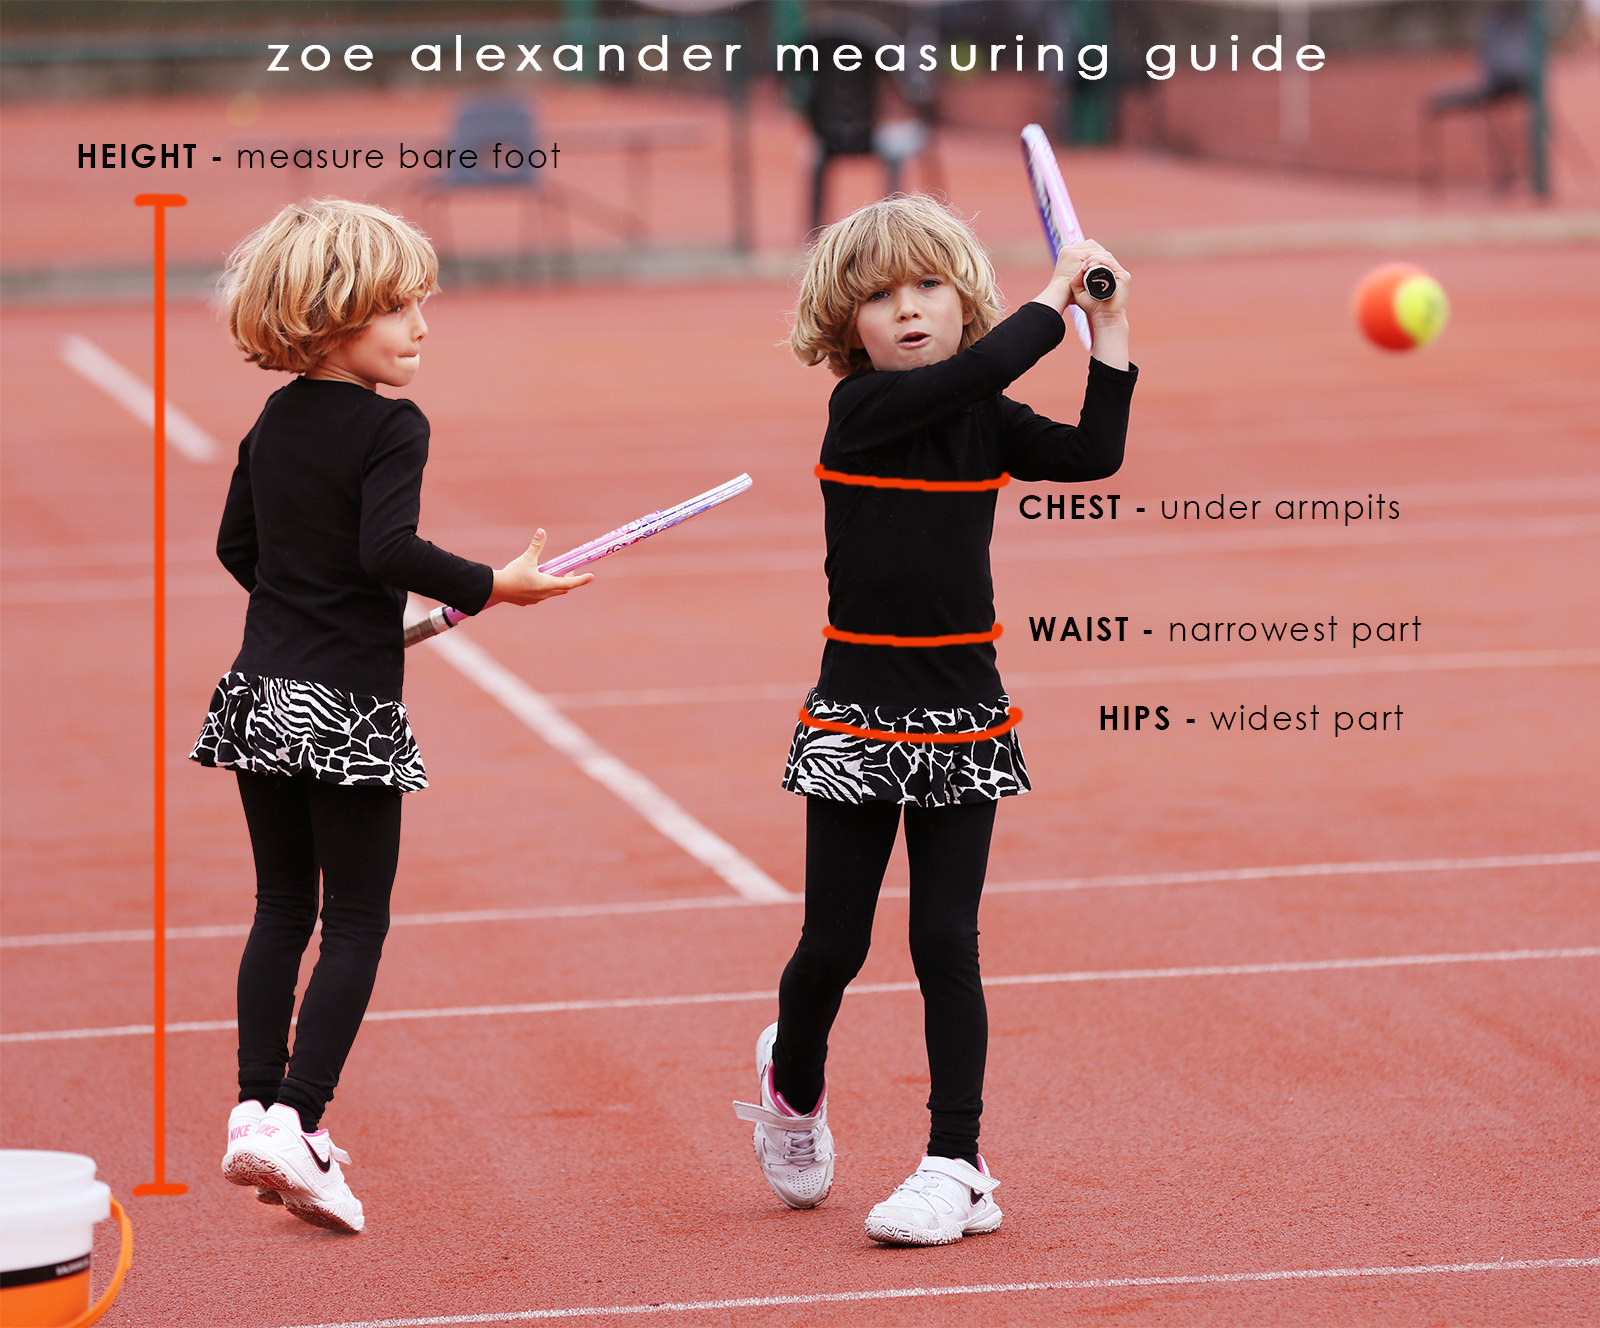 boys girls measuring guide zoe alexander